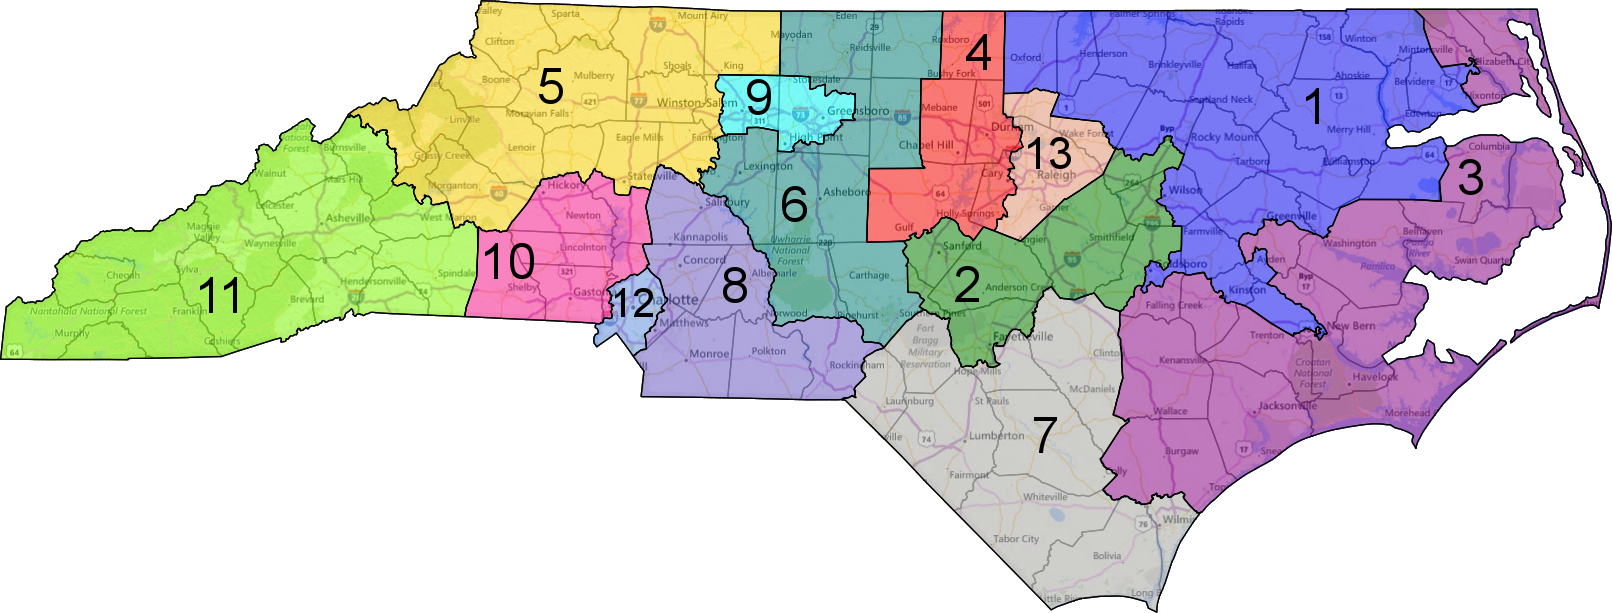 No Maryland is not the most gerrymandered state There is more to